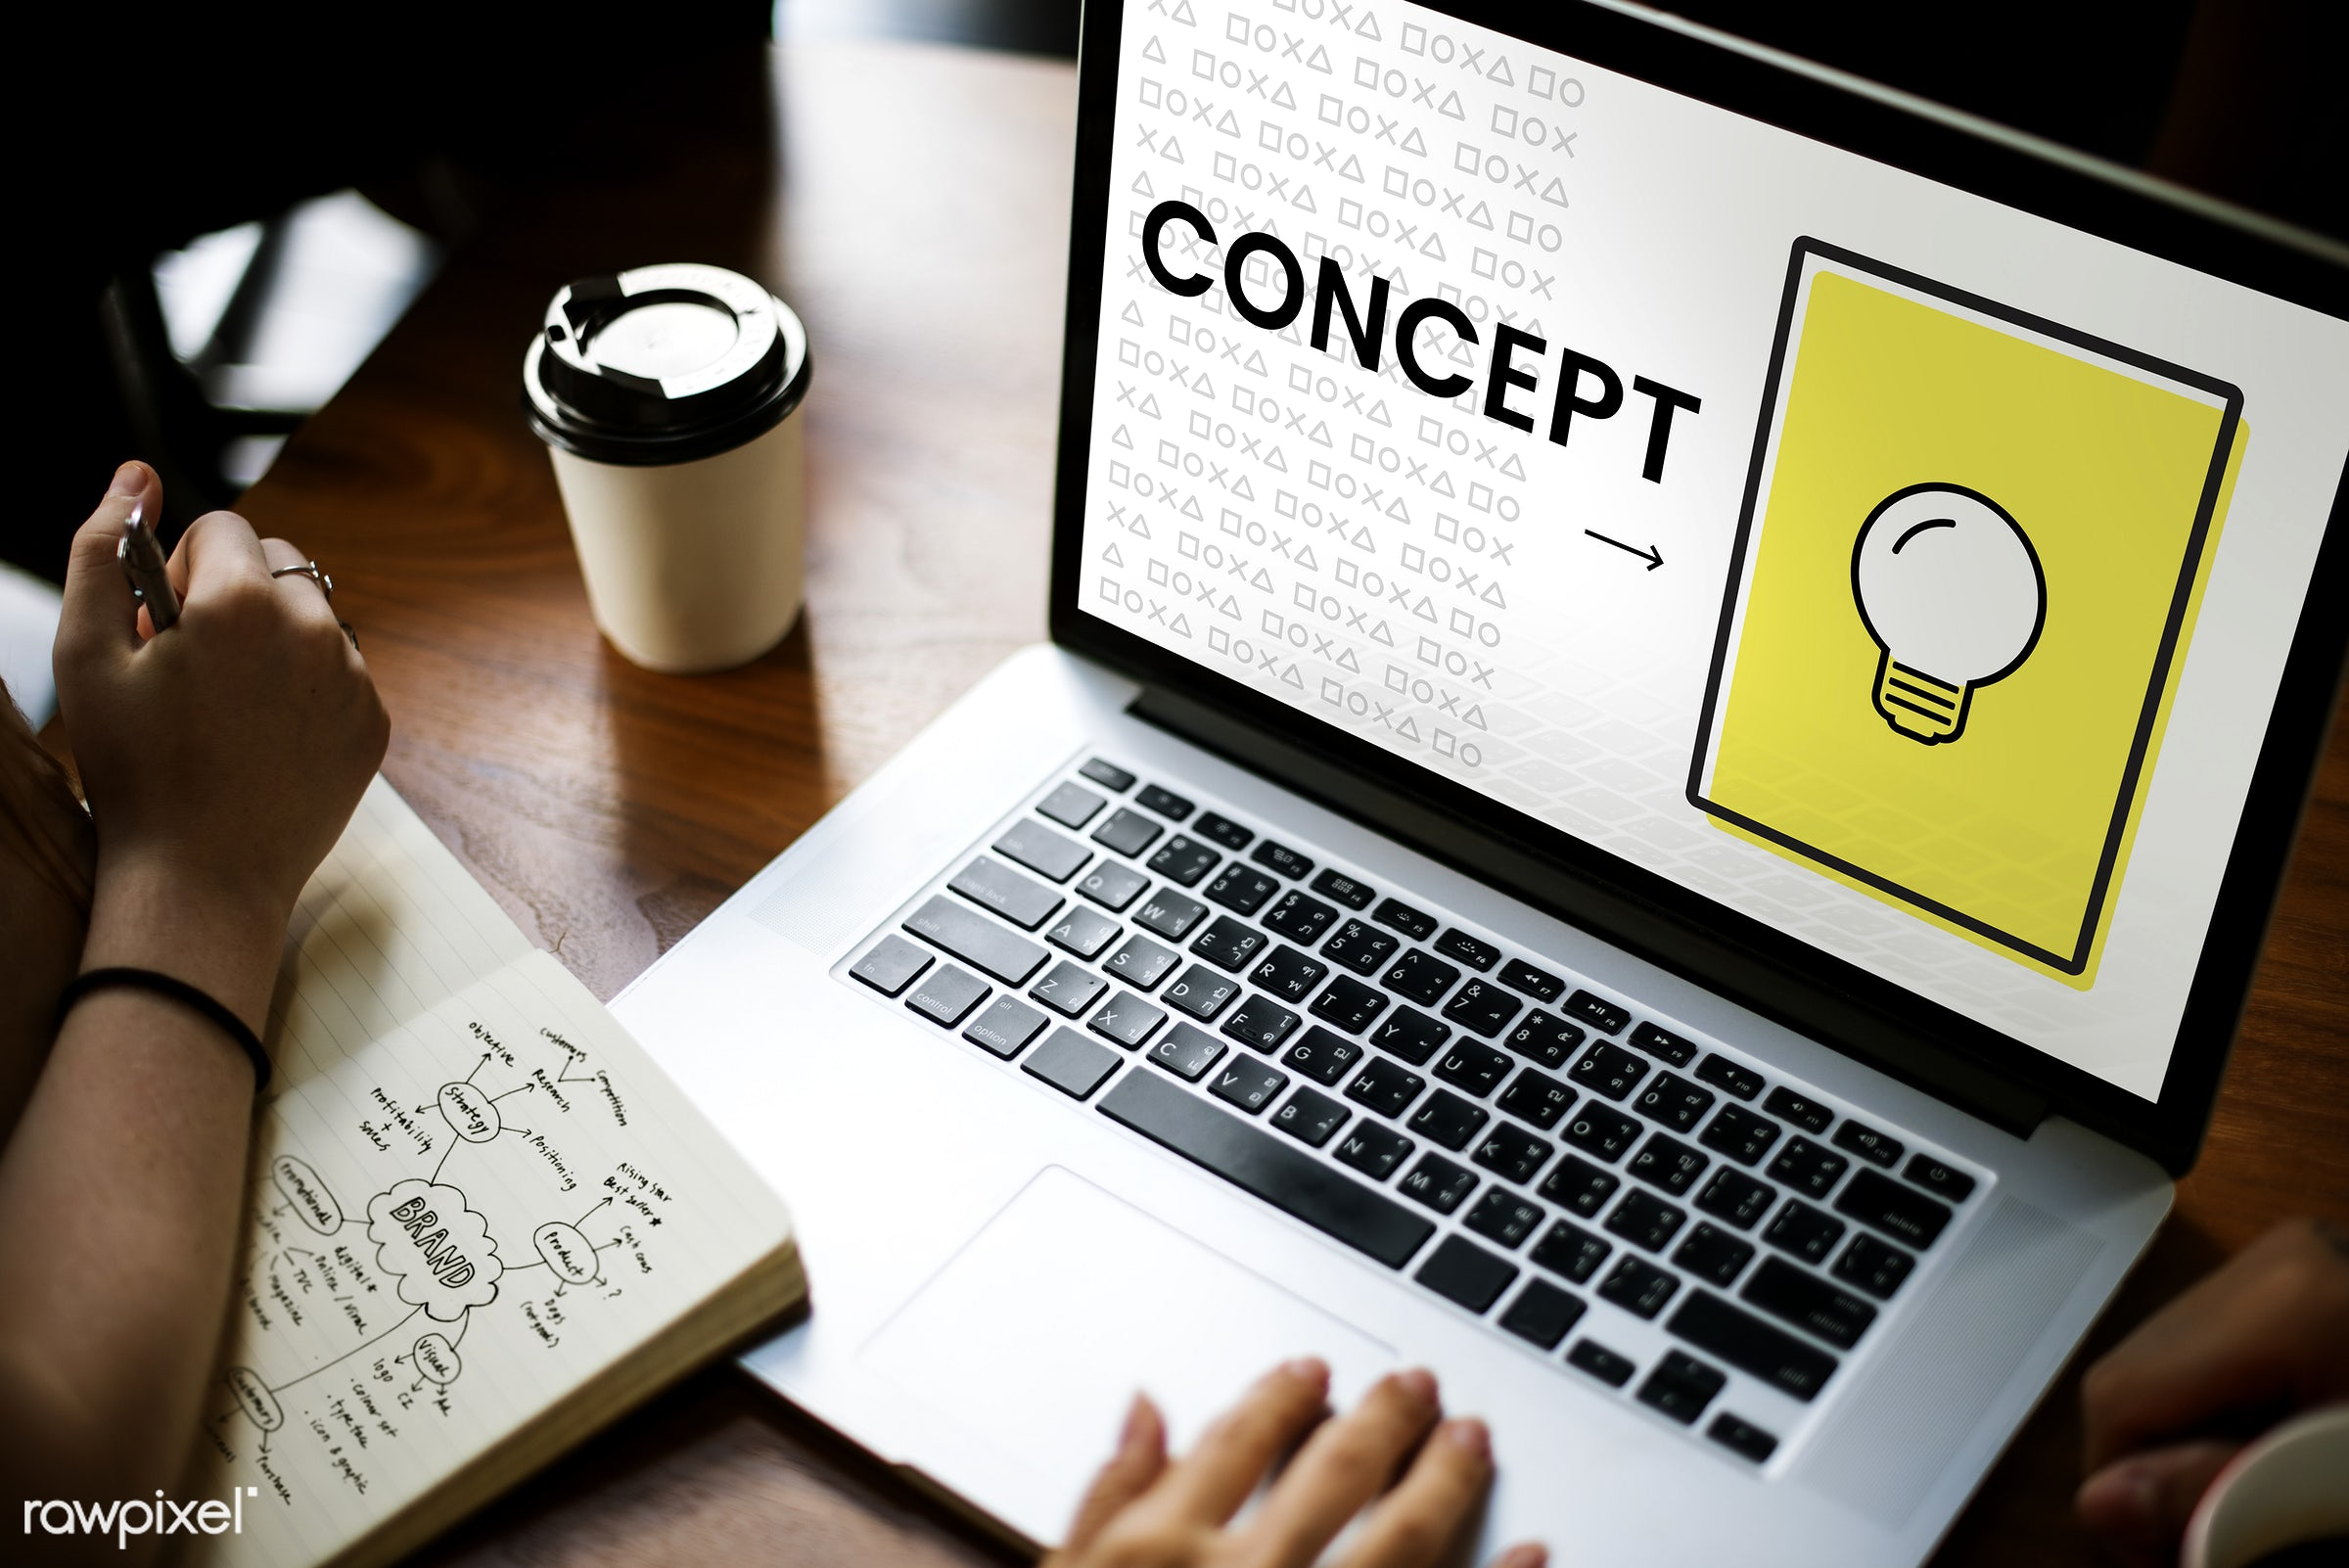 invent, brainy, browsing, business, coffee cup, concept, conceptualise, data, design, device, digital, digital device, hands...